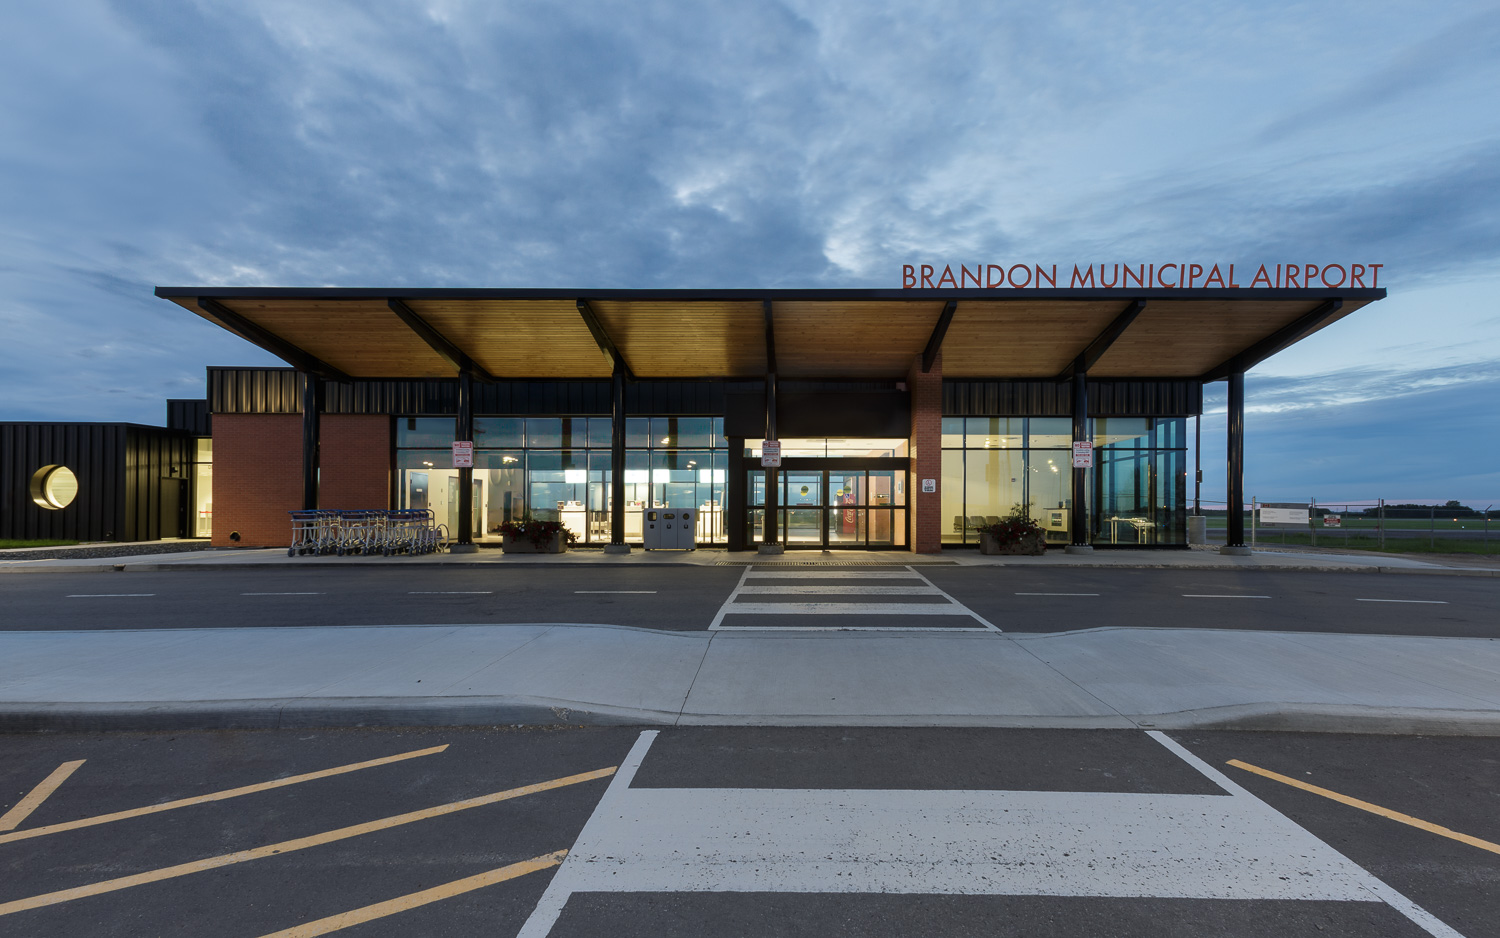 Brandon Municipal Airport, exterior photo of building entrance at dusk / Photo:  Lindsay Reid